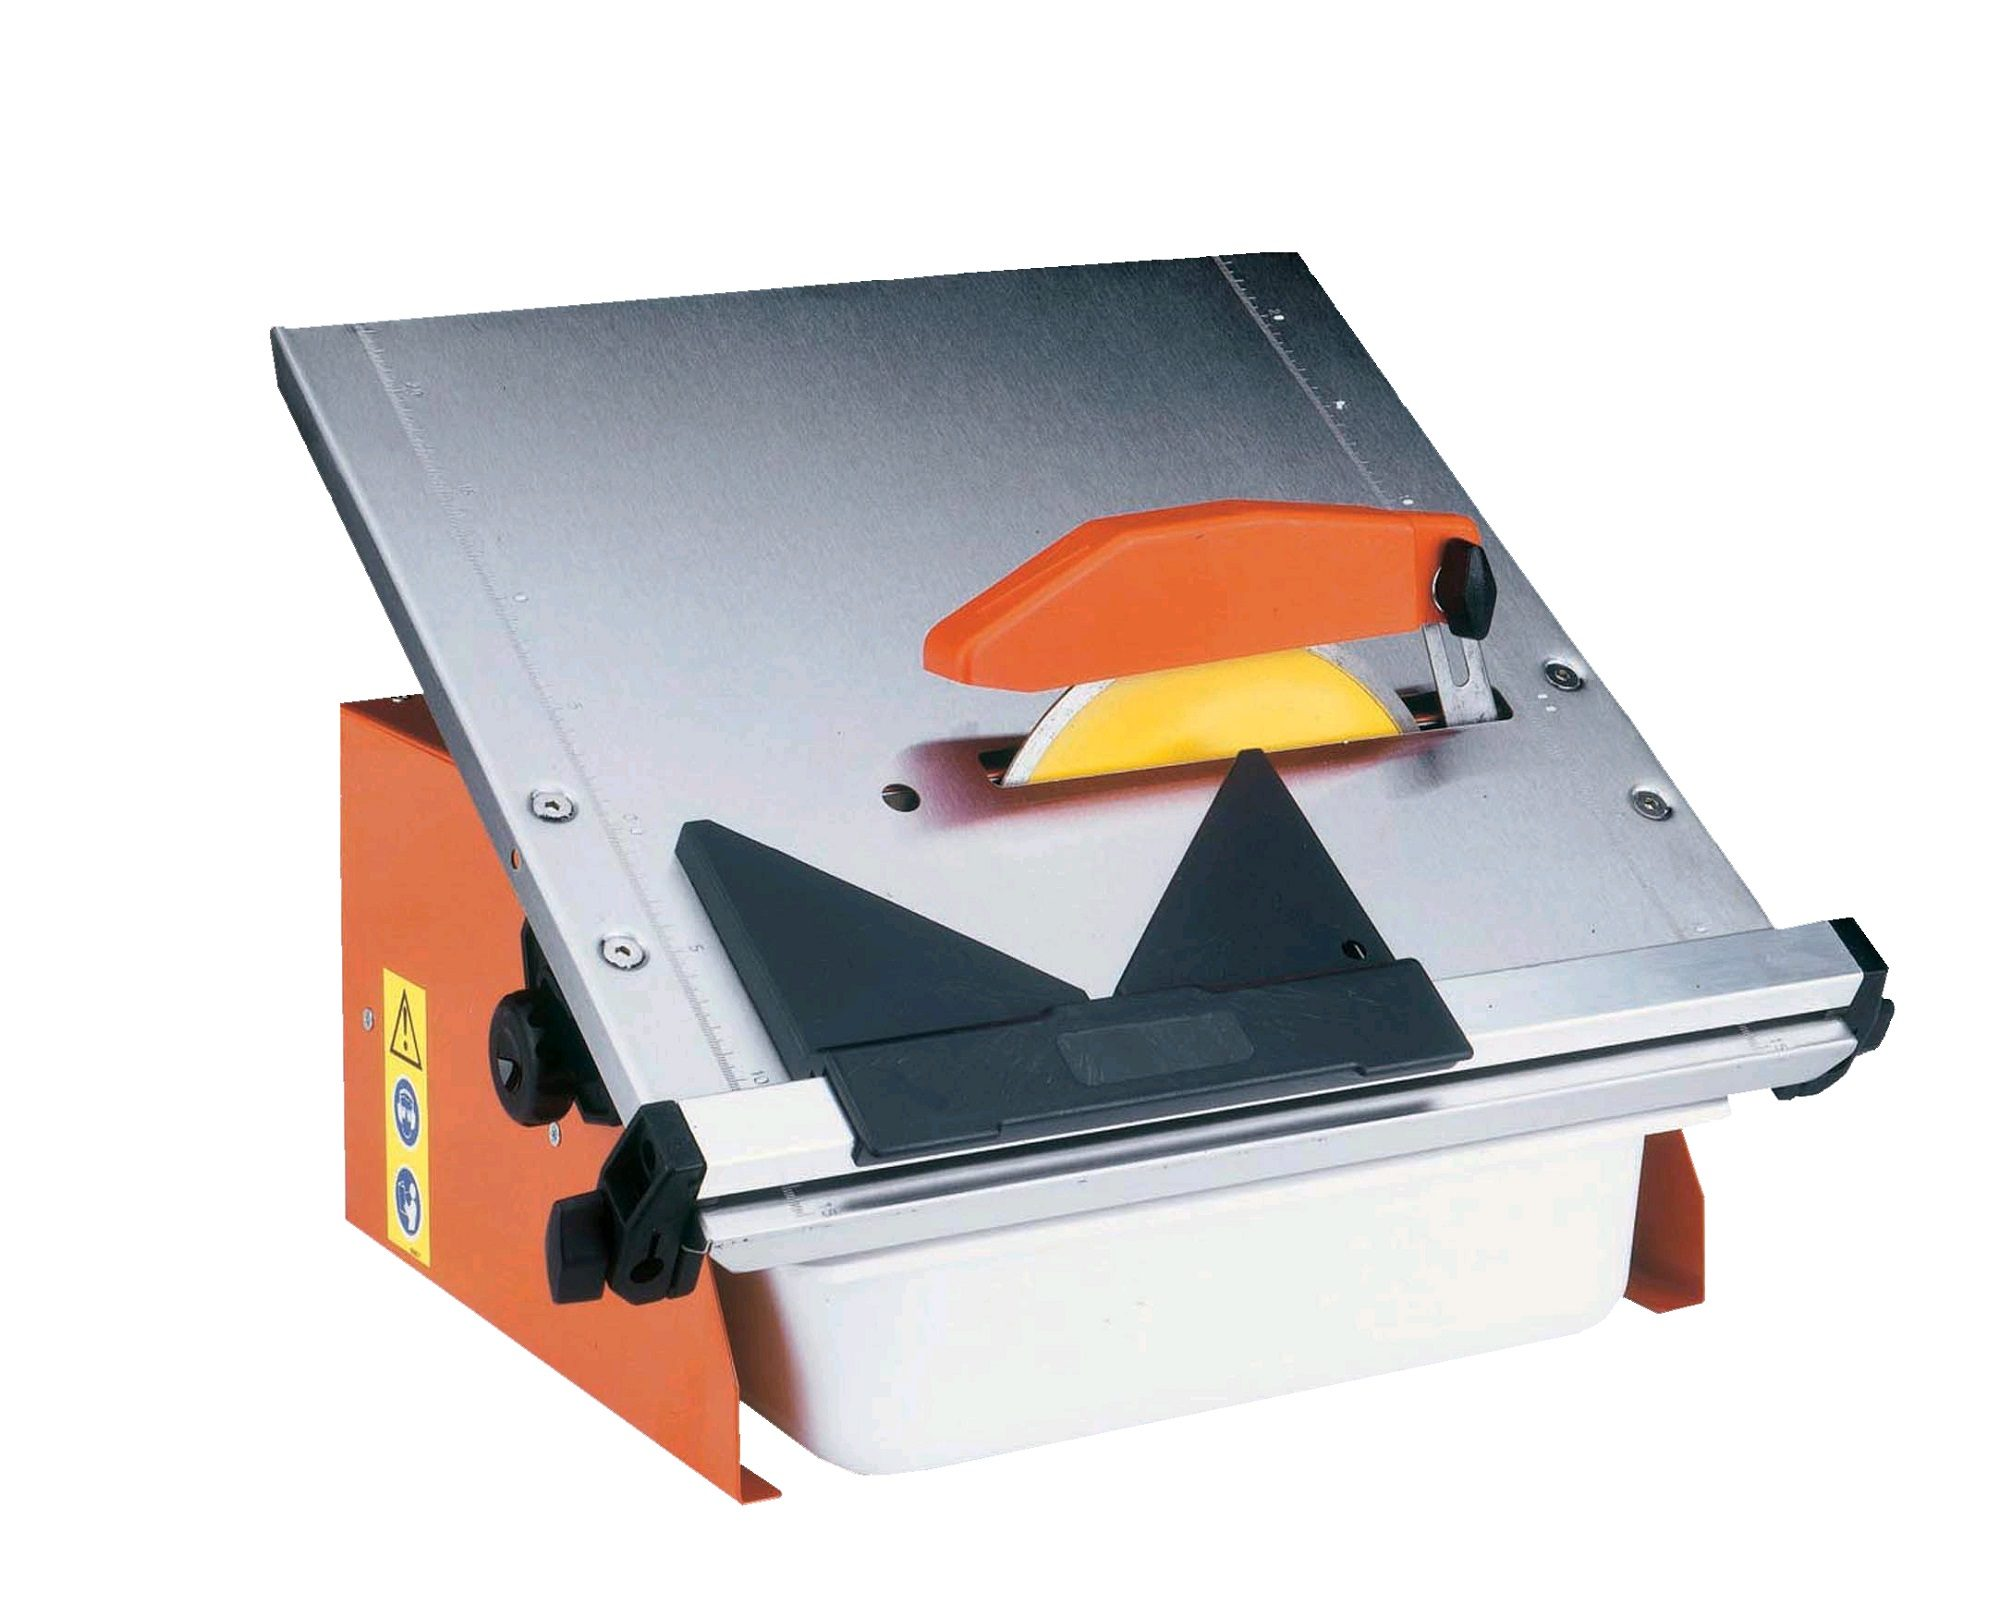 Belle Magik 180 tile saw for sale